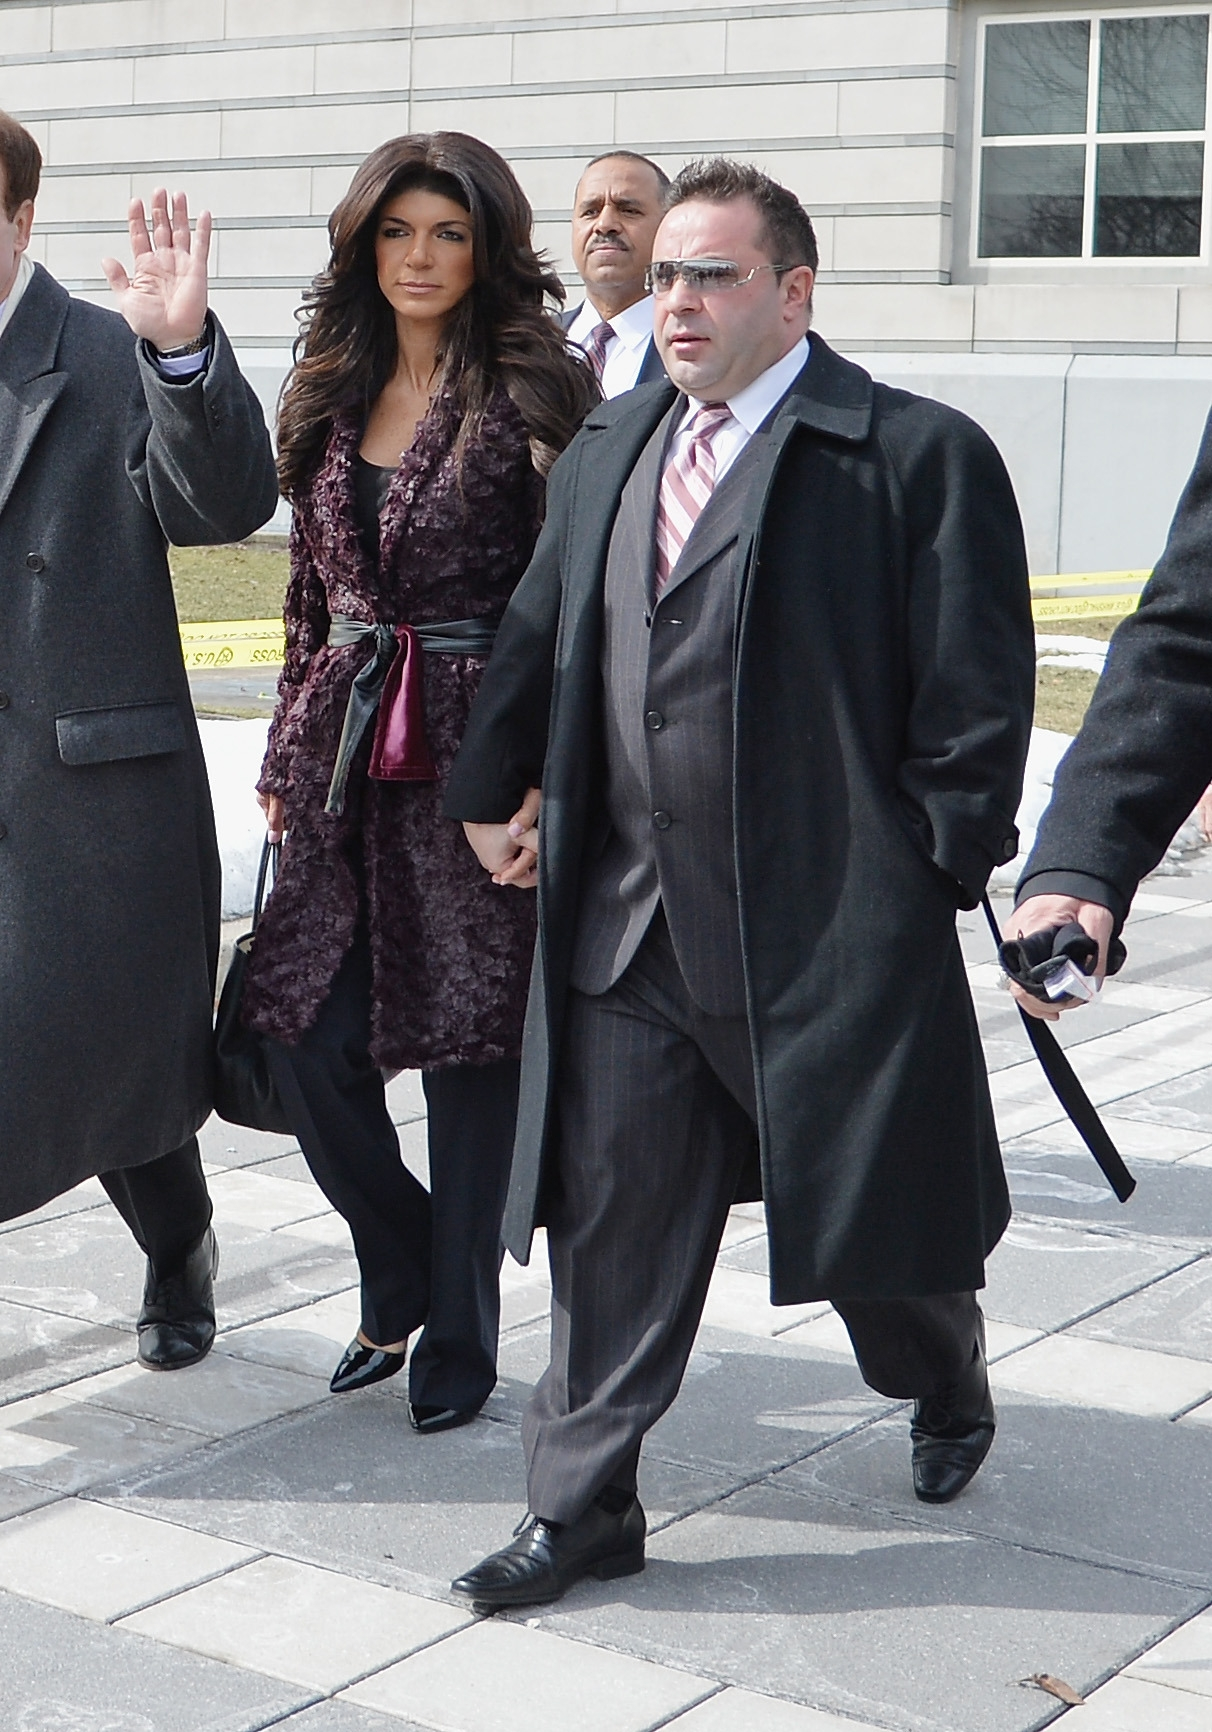 Reality show stars Teresa and Joe Giudice leave court in Newark, N.J., after pleading guilty to fraud charges.